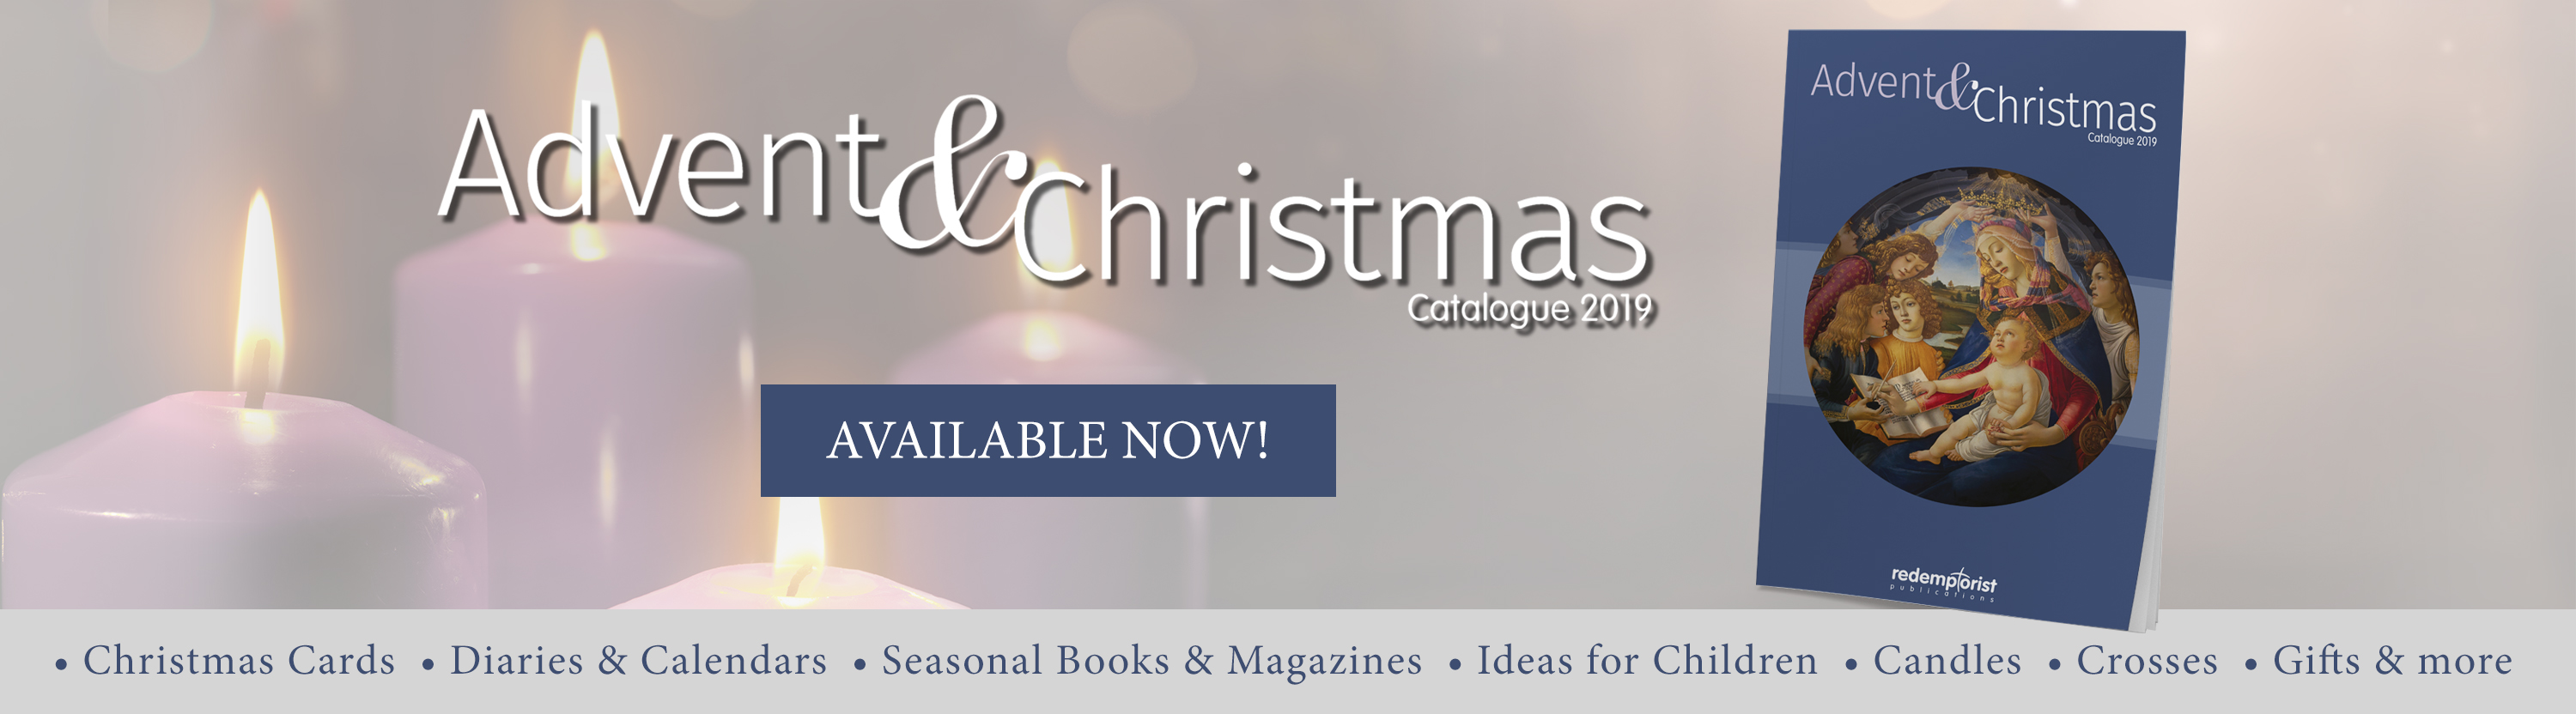 Advent & Christmas Catalogue 2019